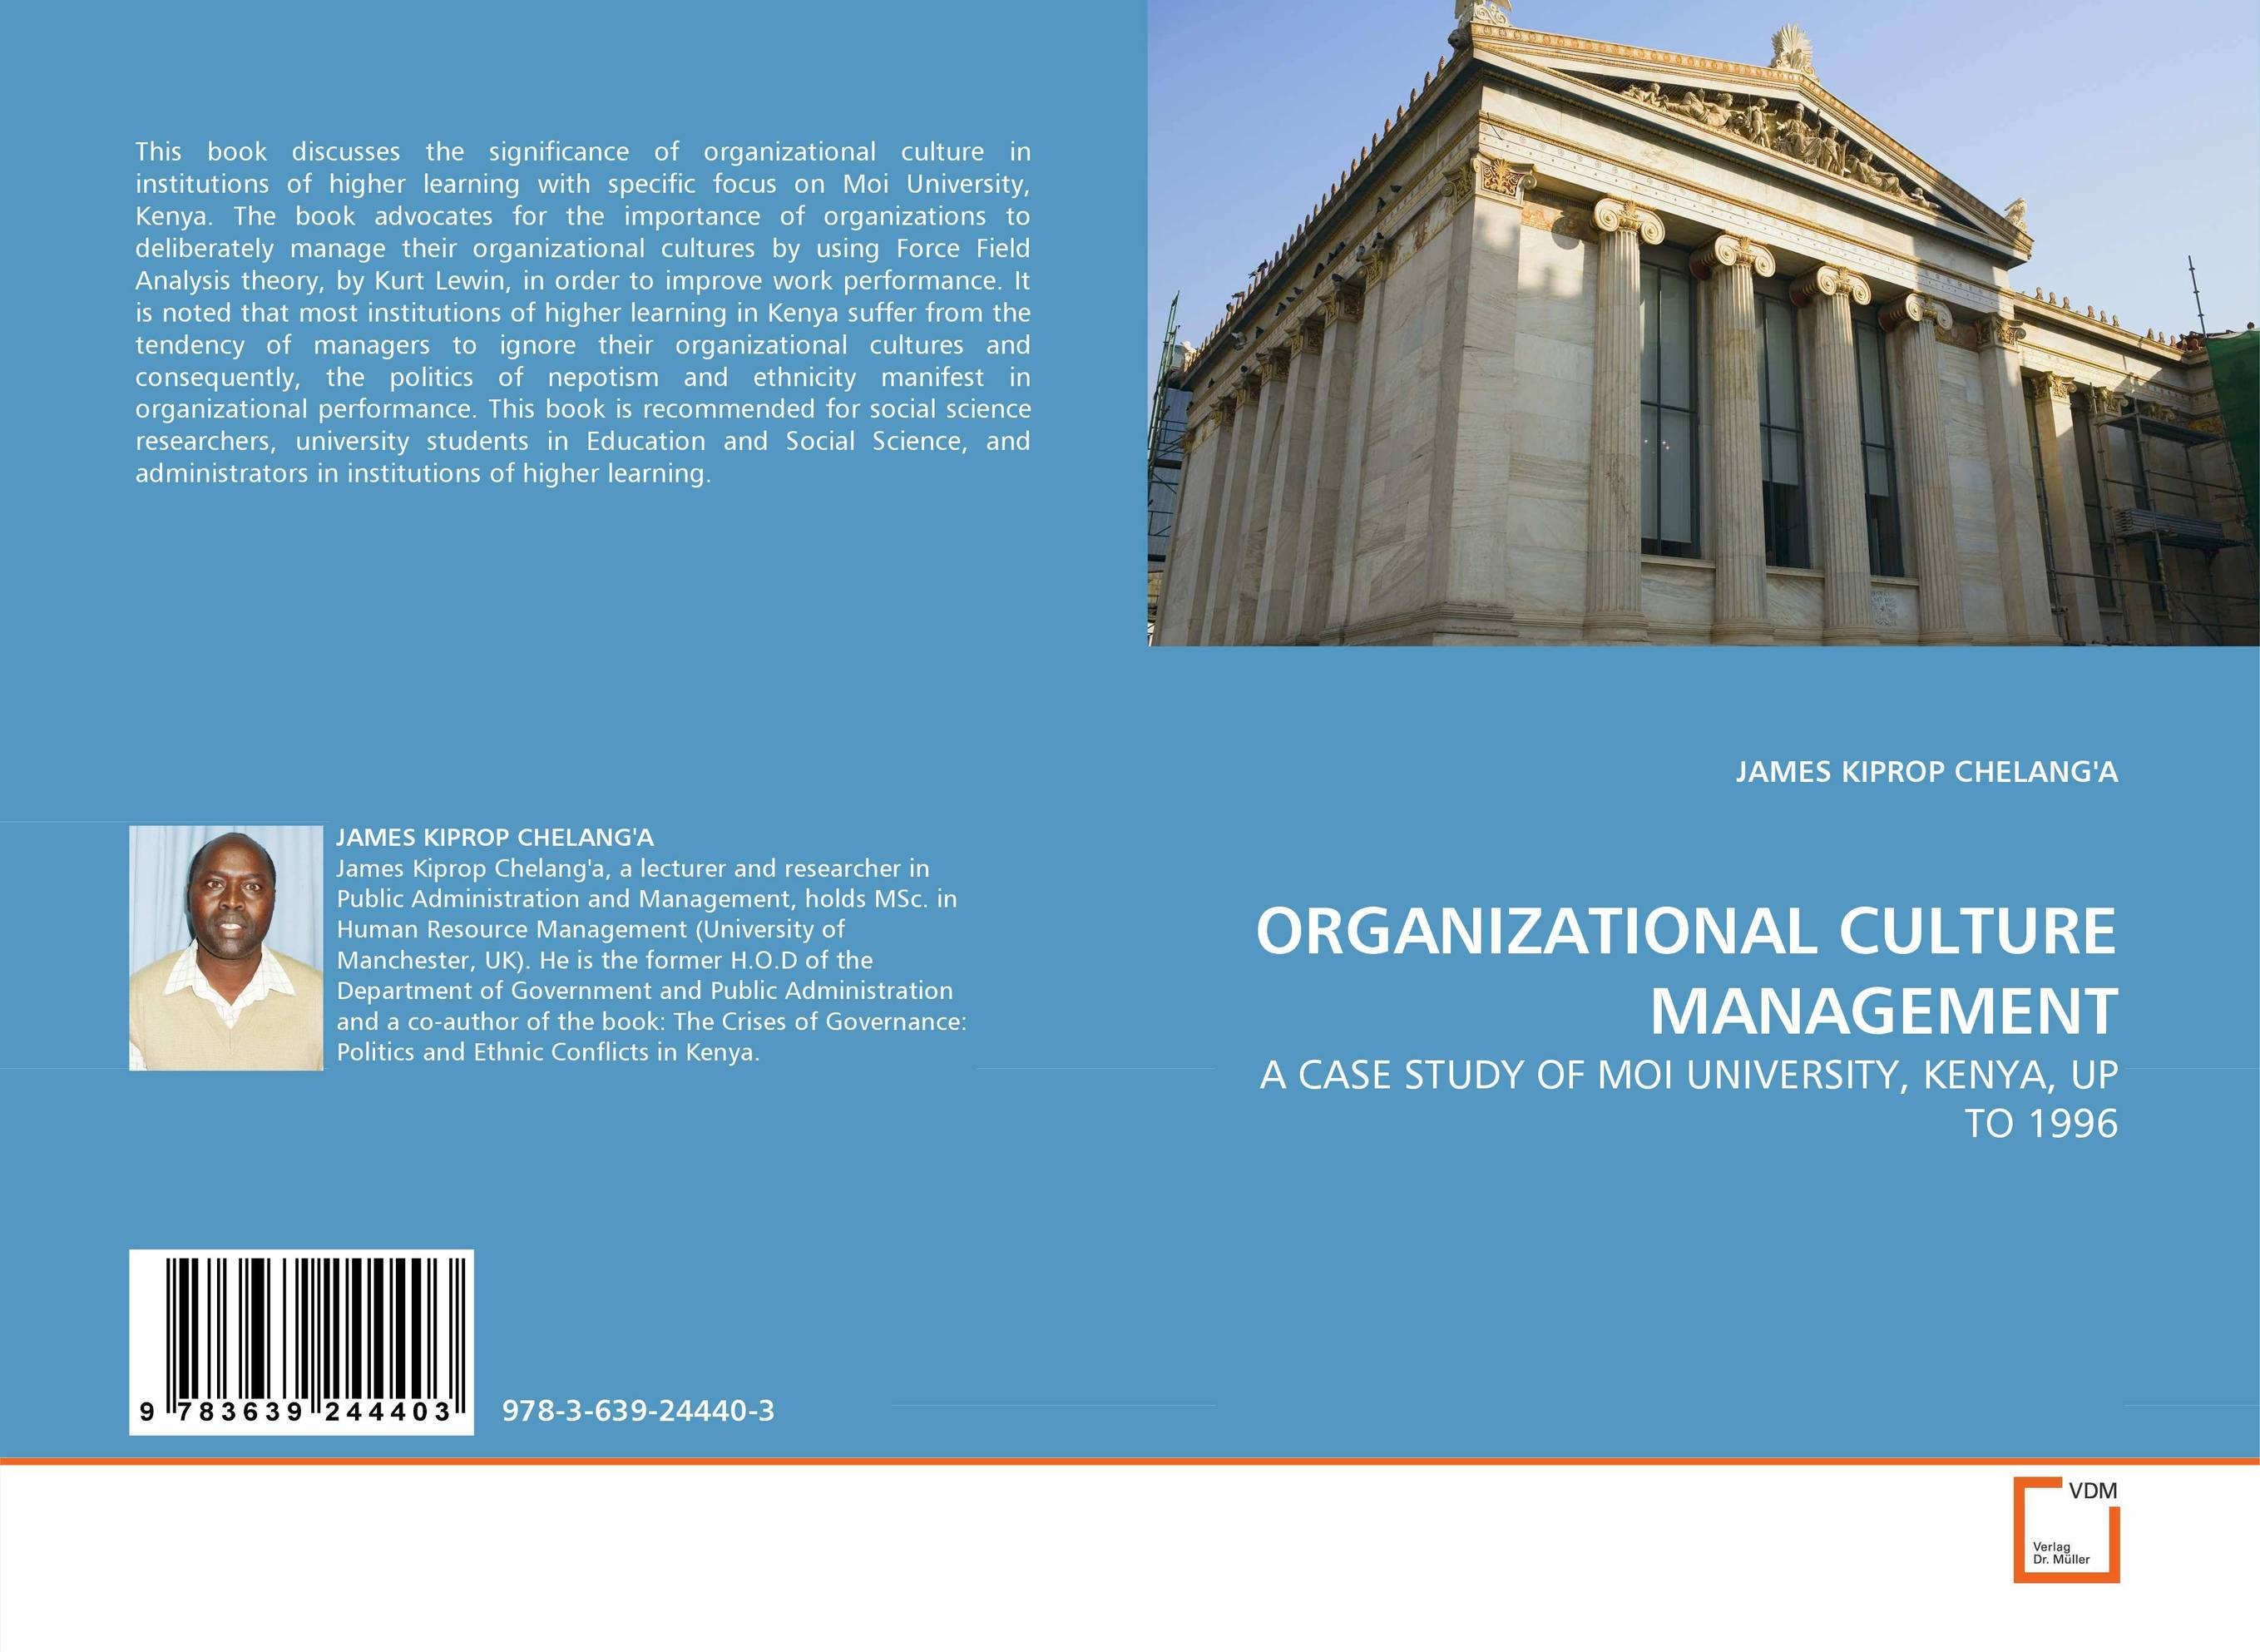 ORGANIZATIONAL CULTURE MANAGEMENT